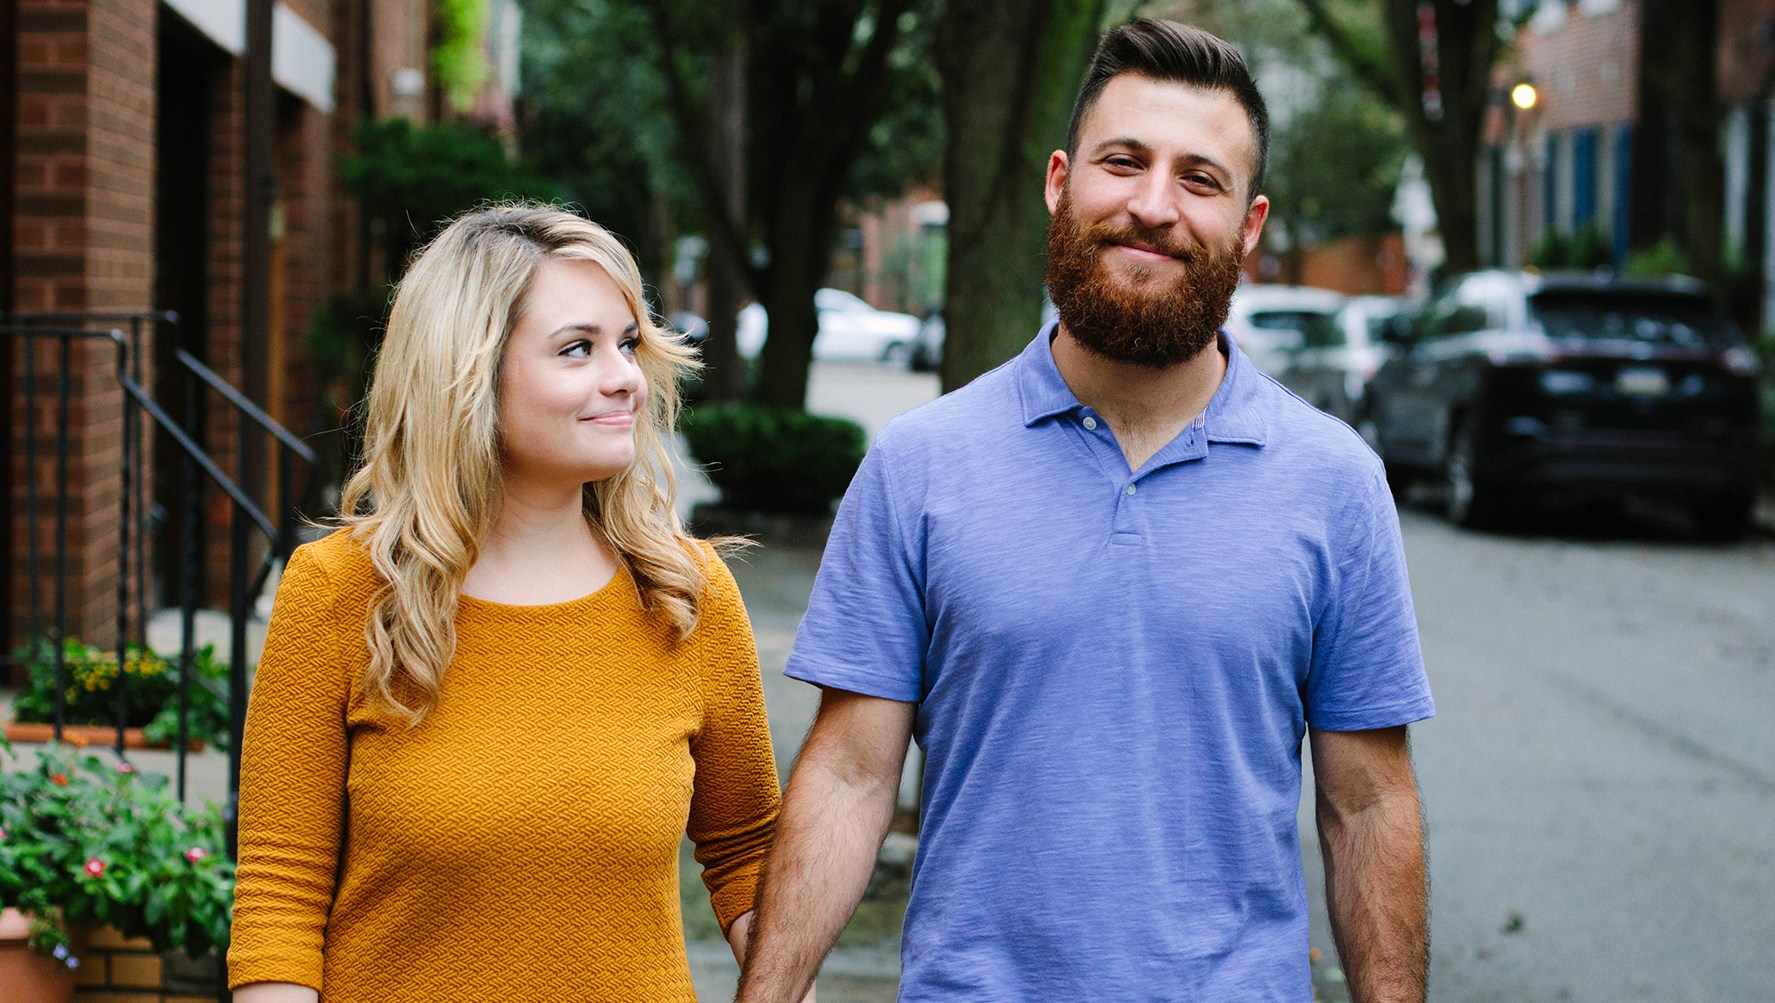 'Married At First Sight' Recap: Kate Not Happy With 'Awkward' Luke